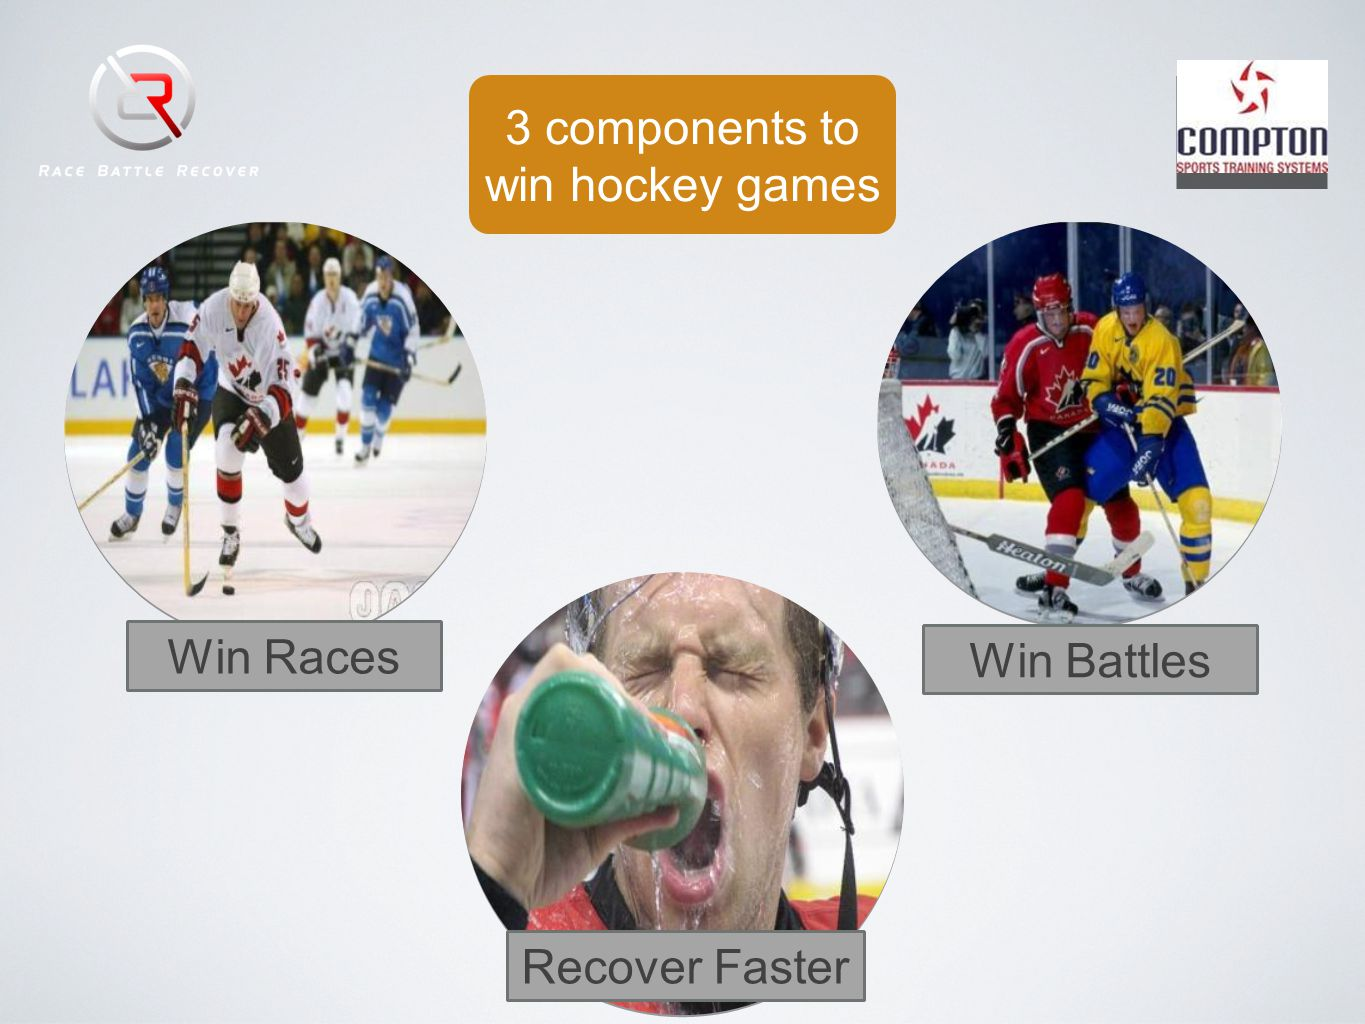 3 components to win hockey games Win Races Win Battles Recover Faster